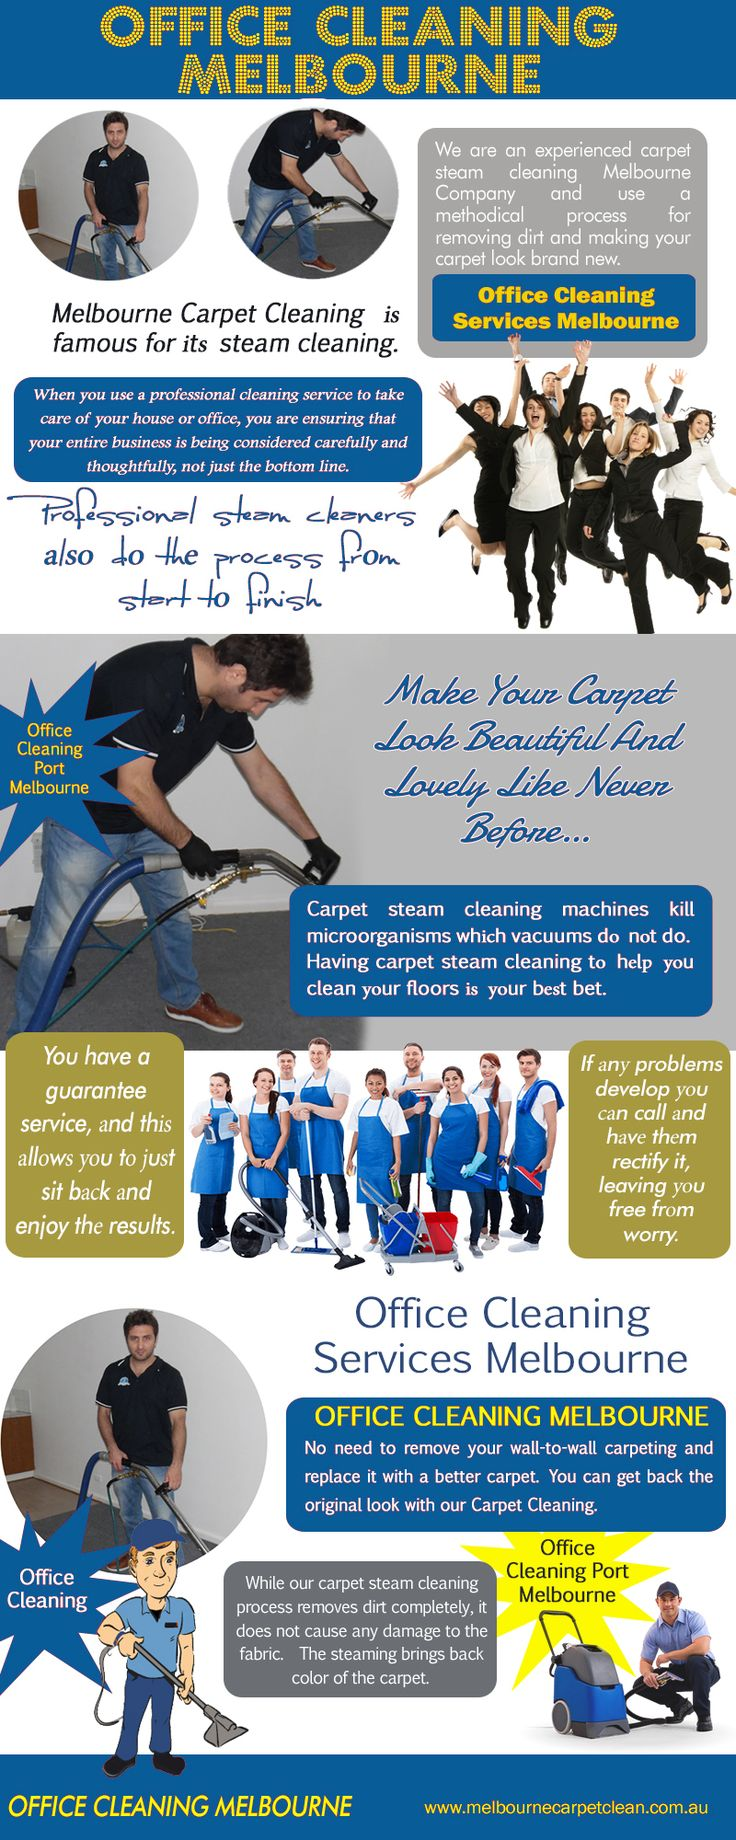 Taking care and commercially melbourne carpet cleaning for your carpets on regular basis will extend the growth of your